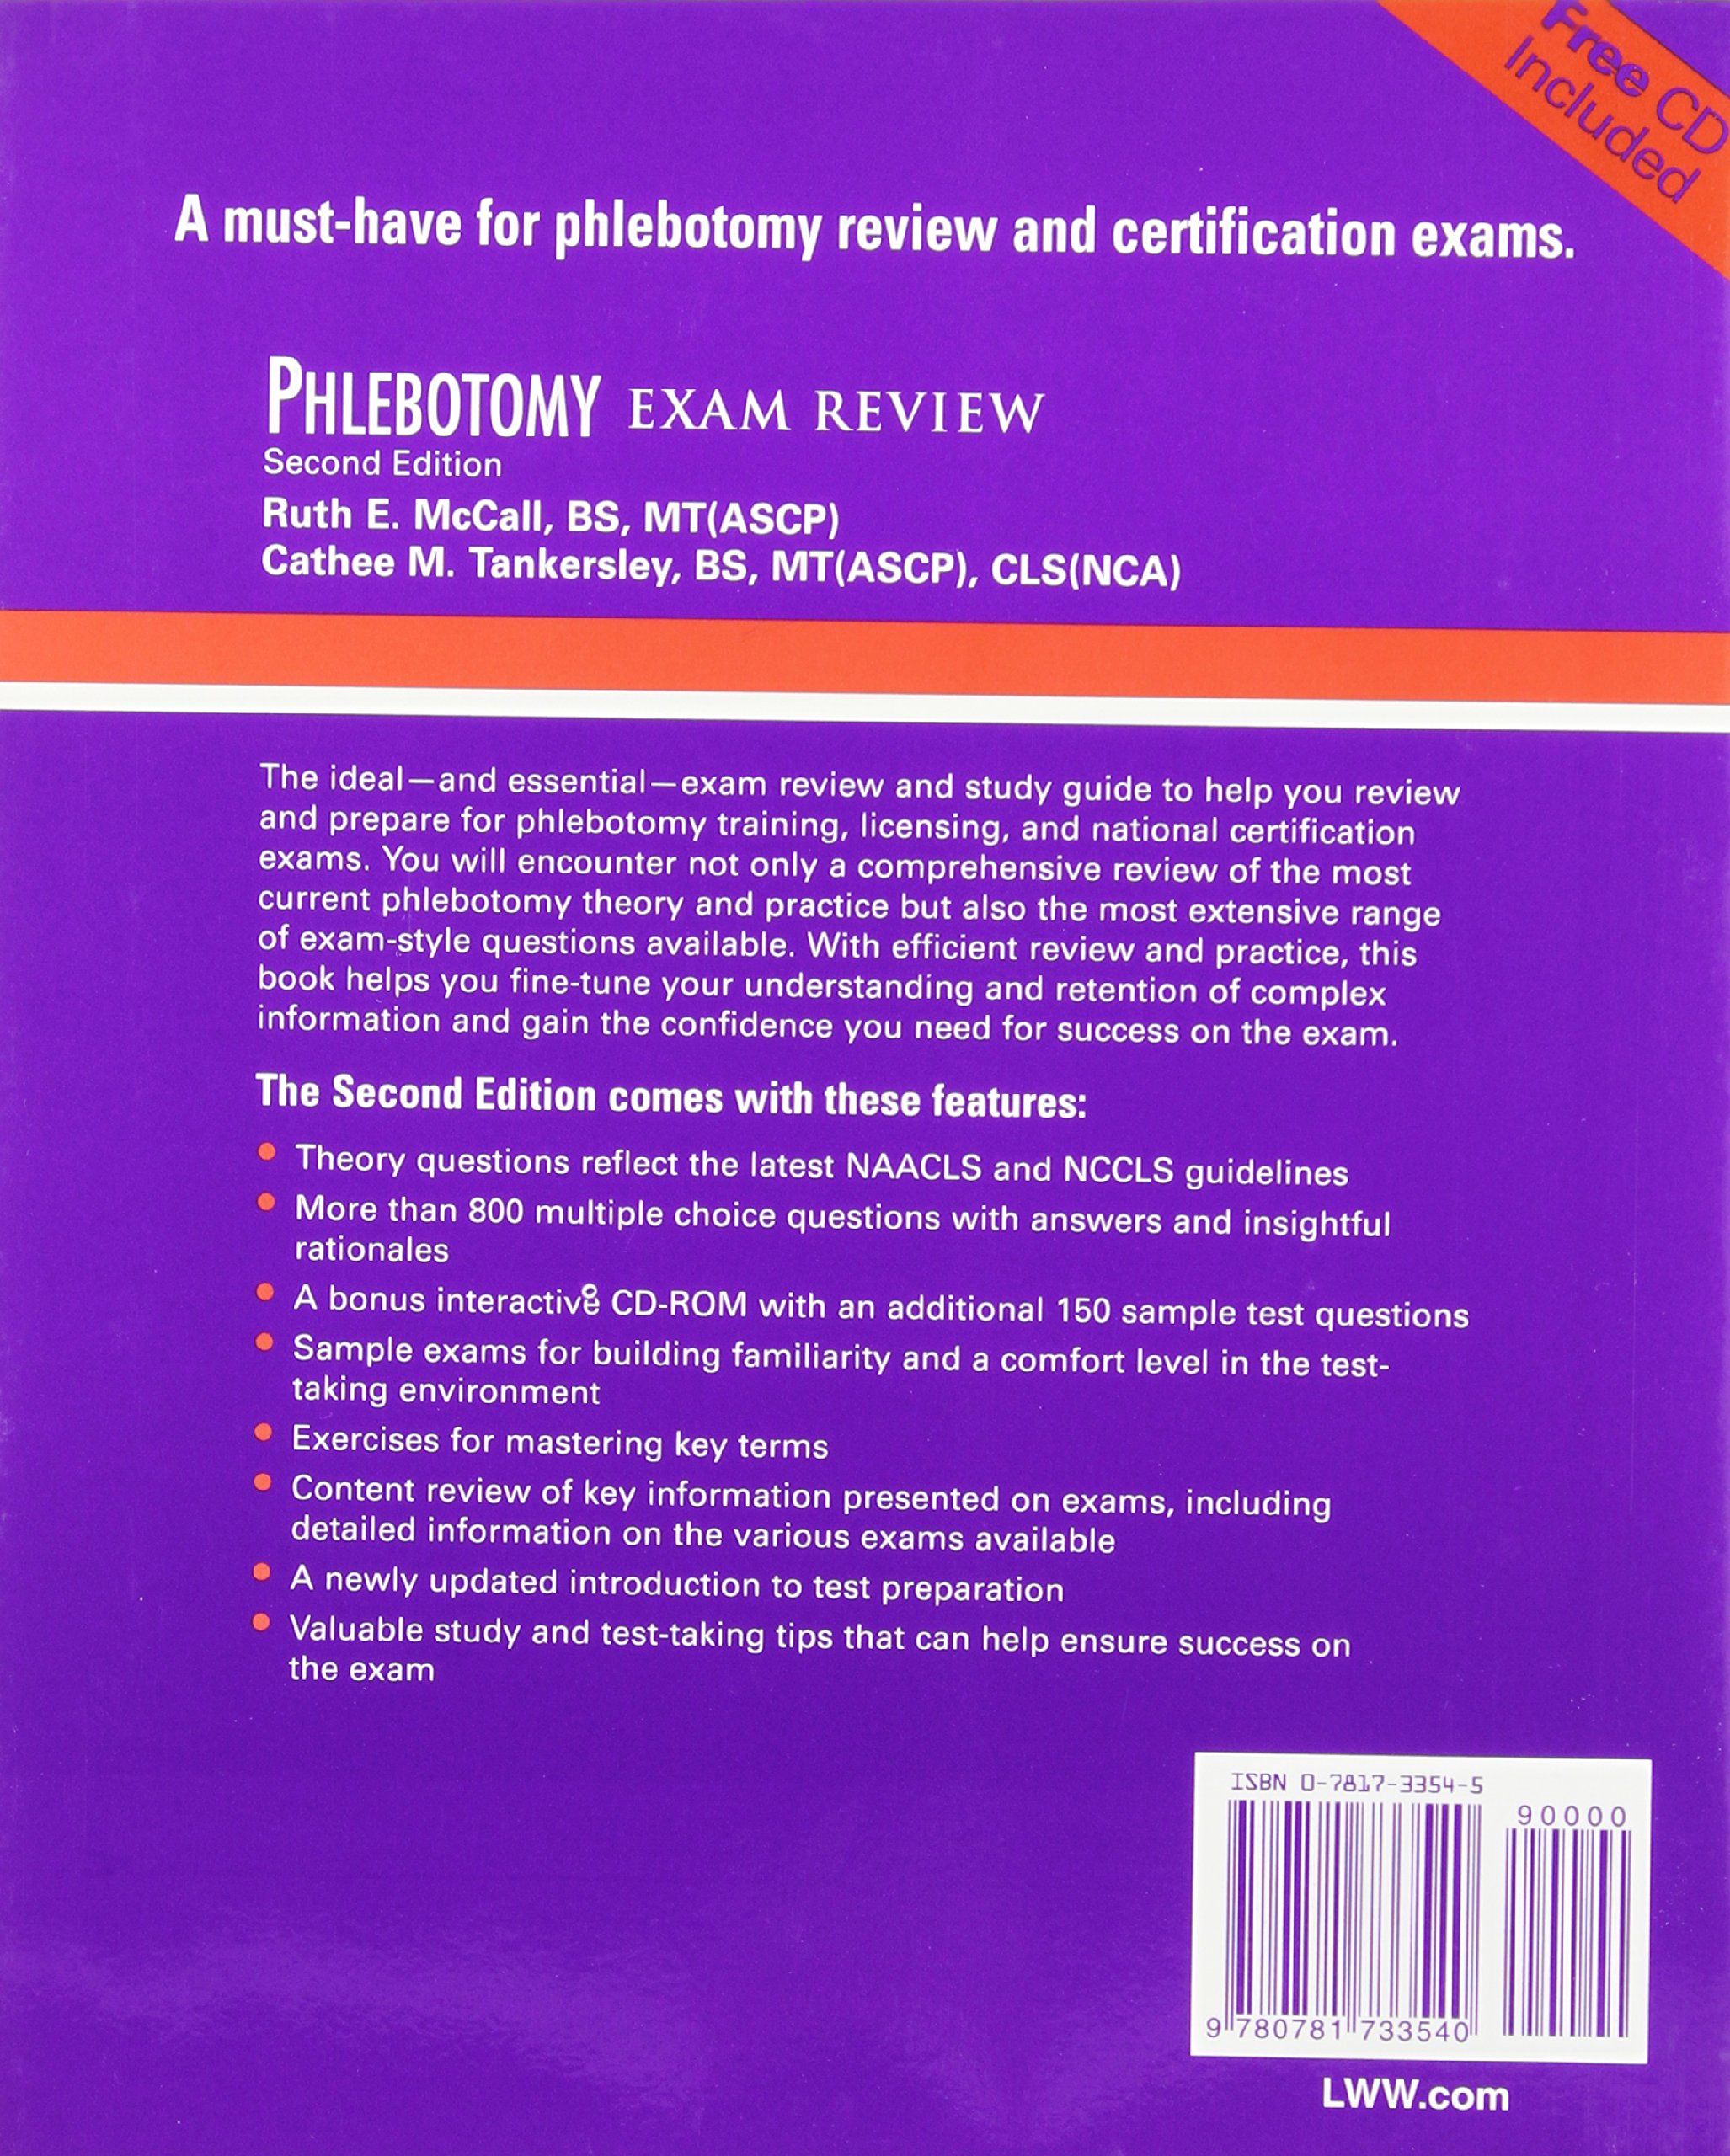 Phlebotomy essentials phlebotomy exam review ruth e mccall phlebotomy essentials phlebotomy exam review ruth e mccall cathee m tankersley 9780781750851 amazon books xflitez Image collections